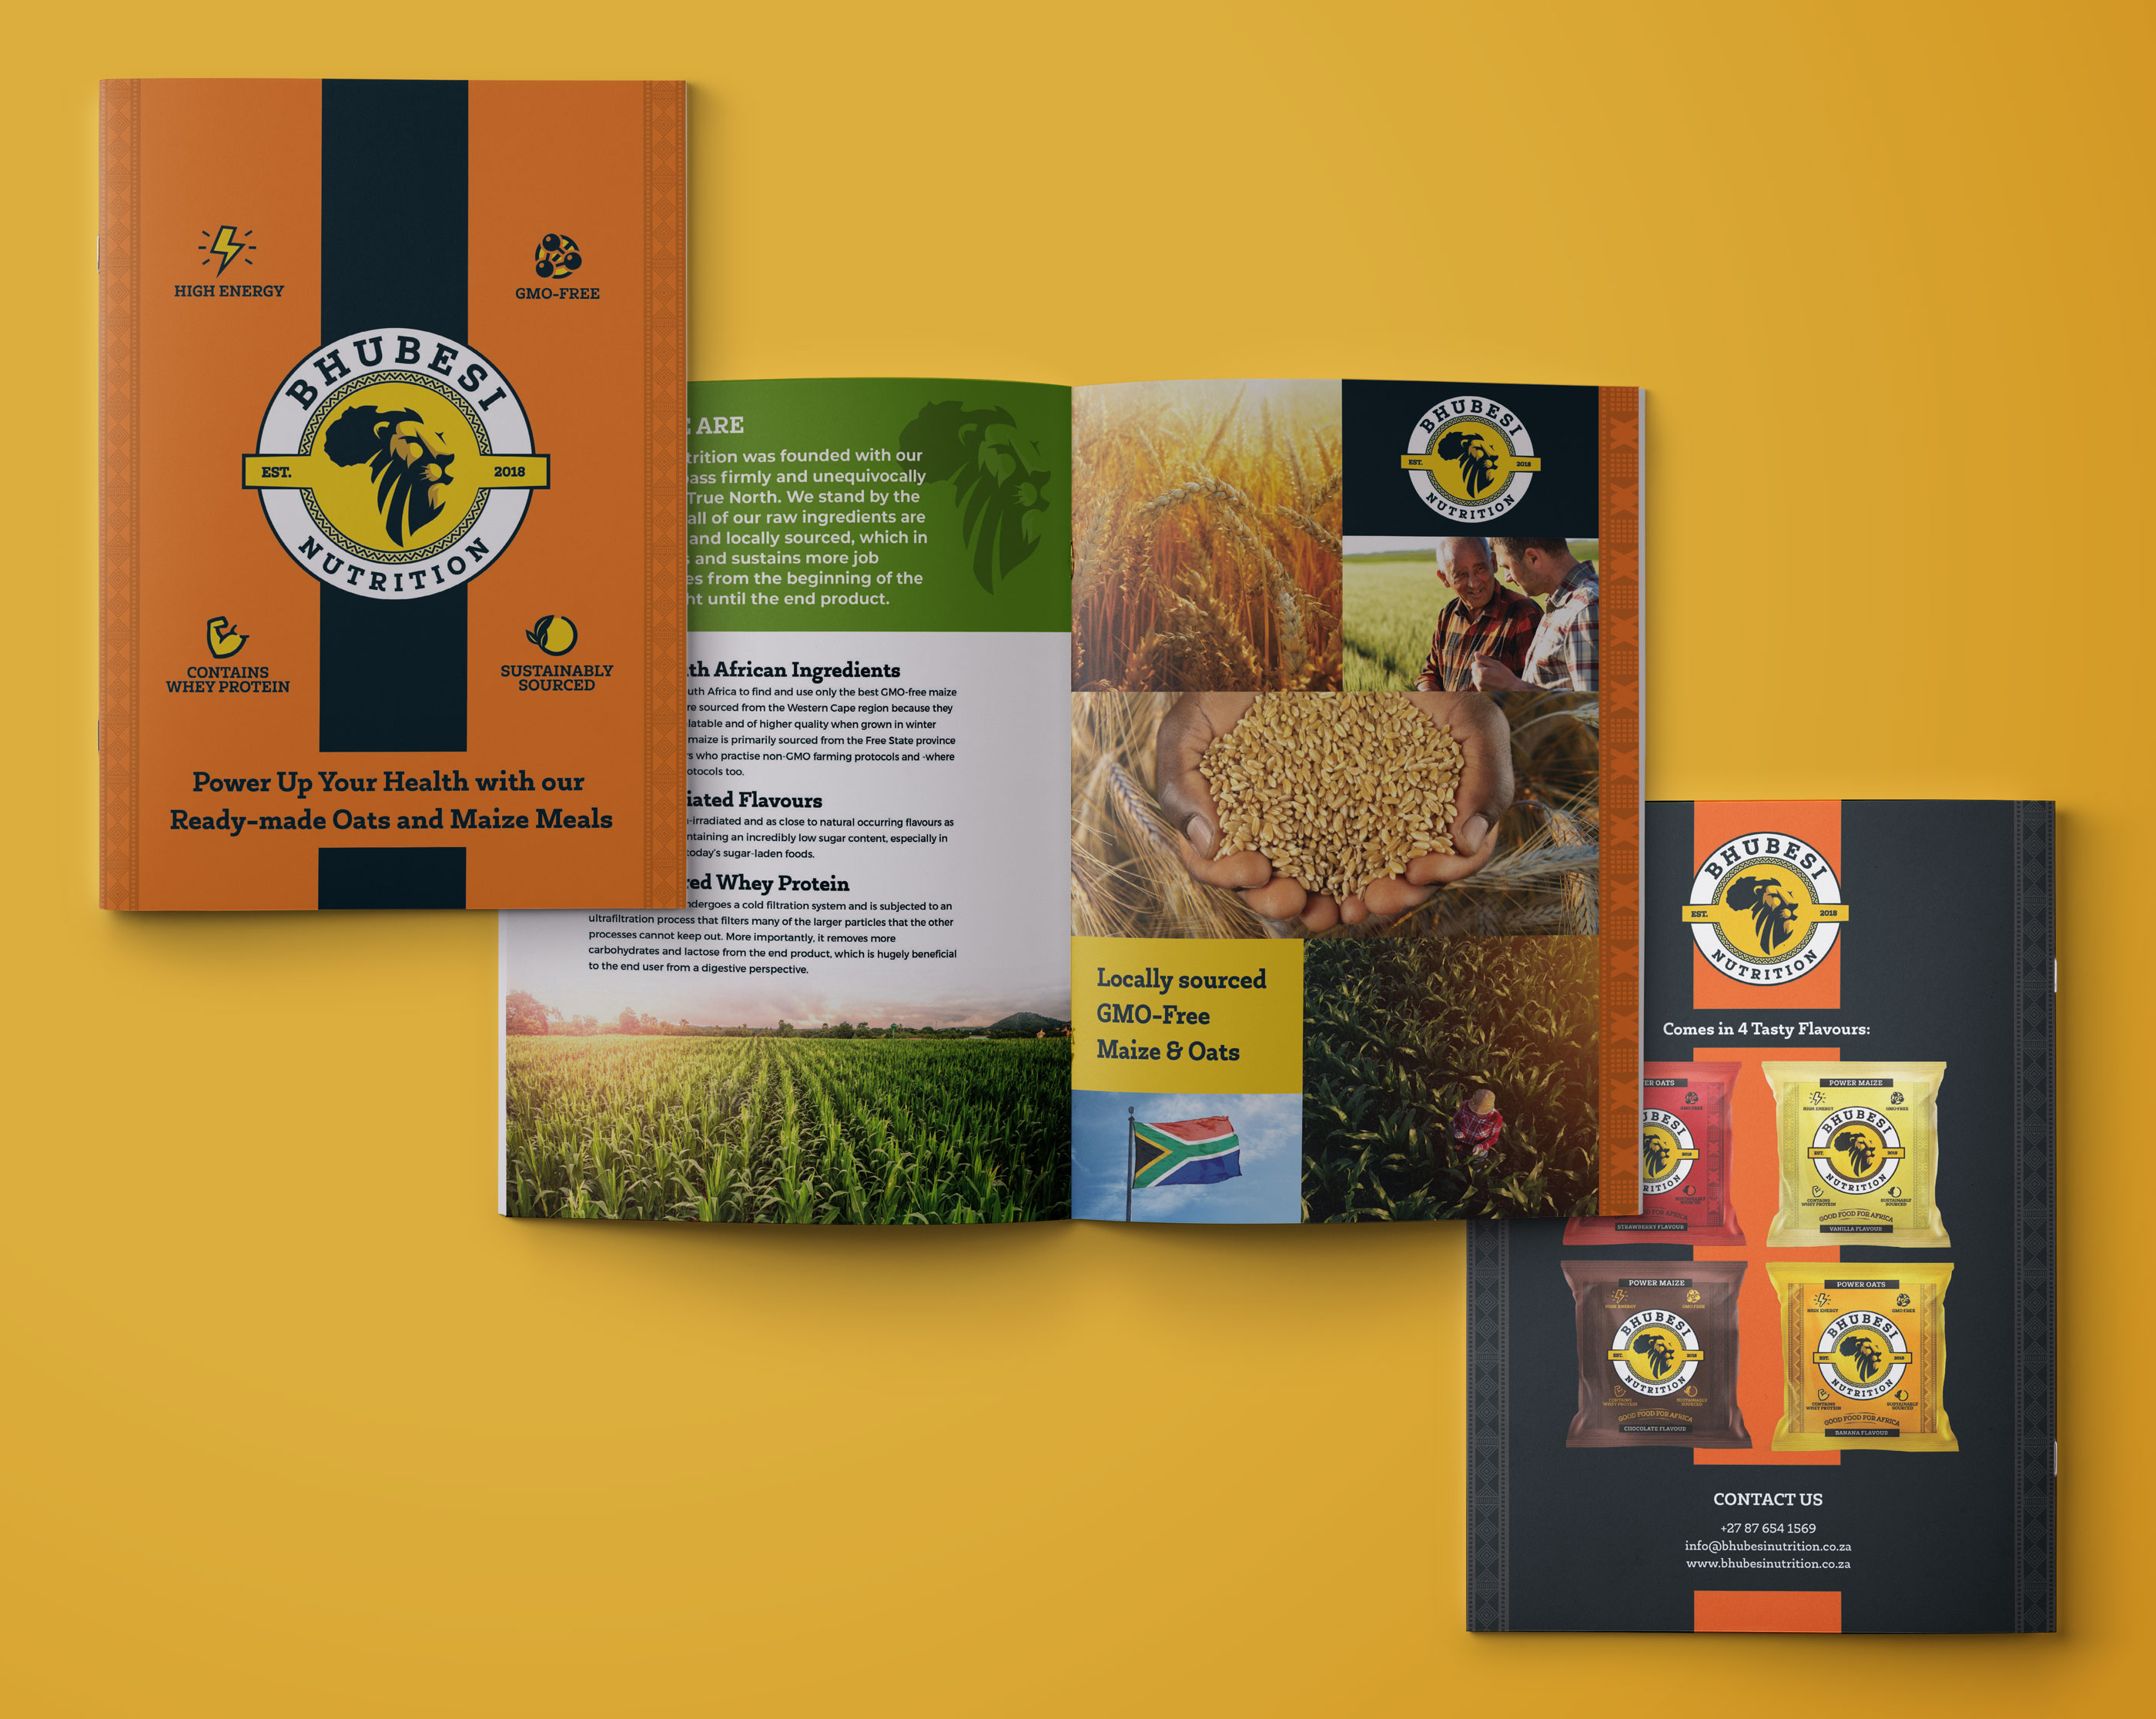 Bhubesi Nutrition Company Profile Graphic Design by Agent Orange South Africa